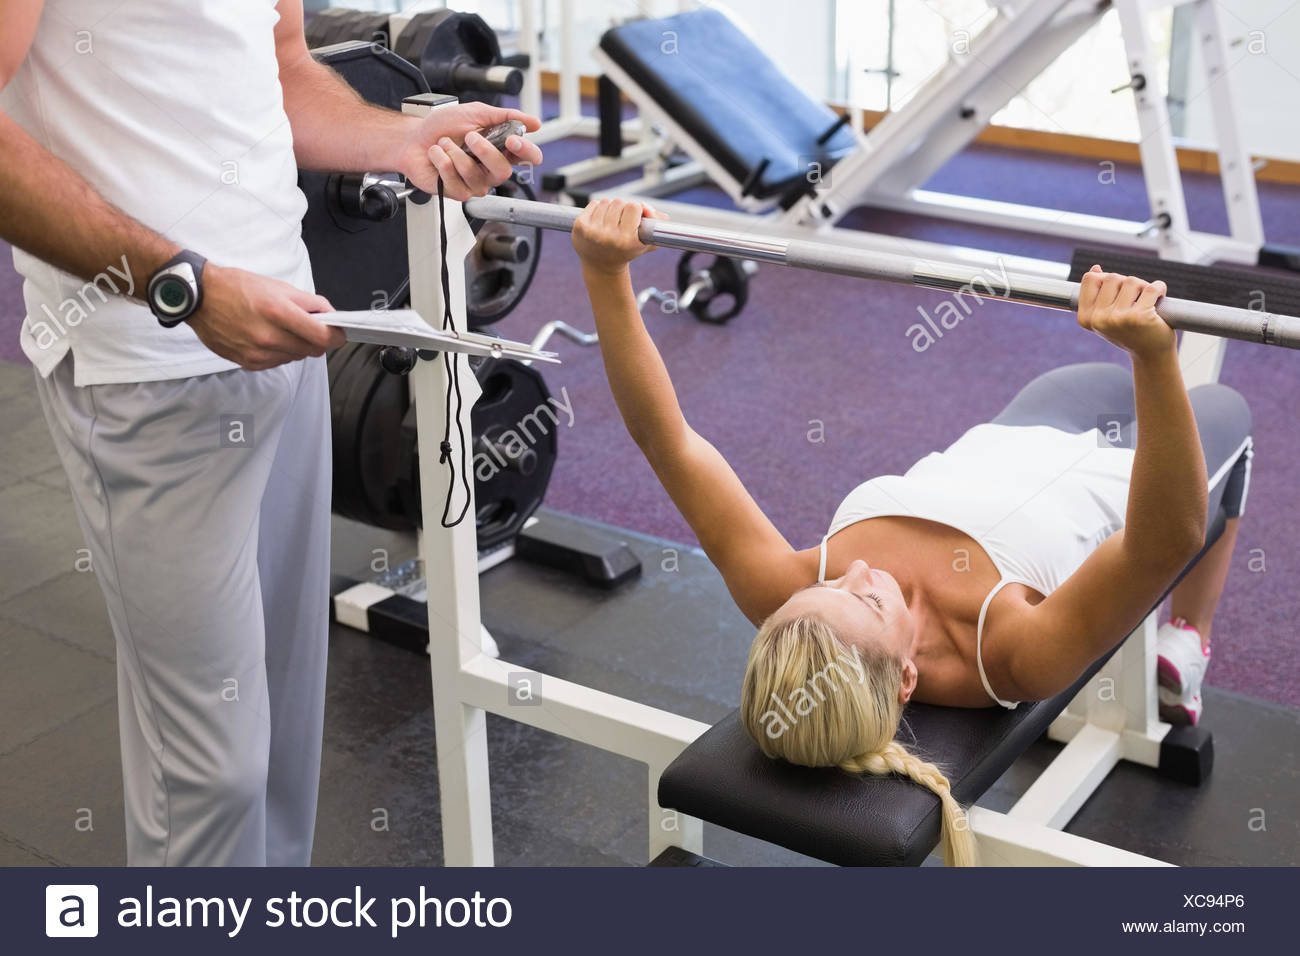 Trainer with clipboard besides woman lifting barbell in gym Stock Photo